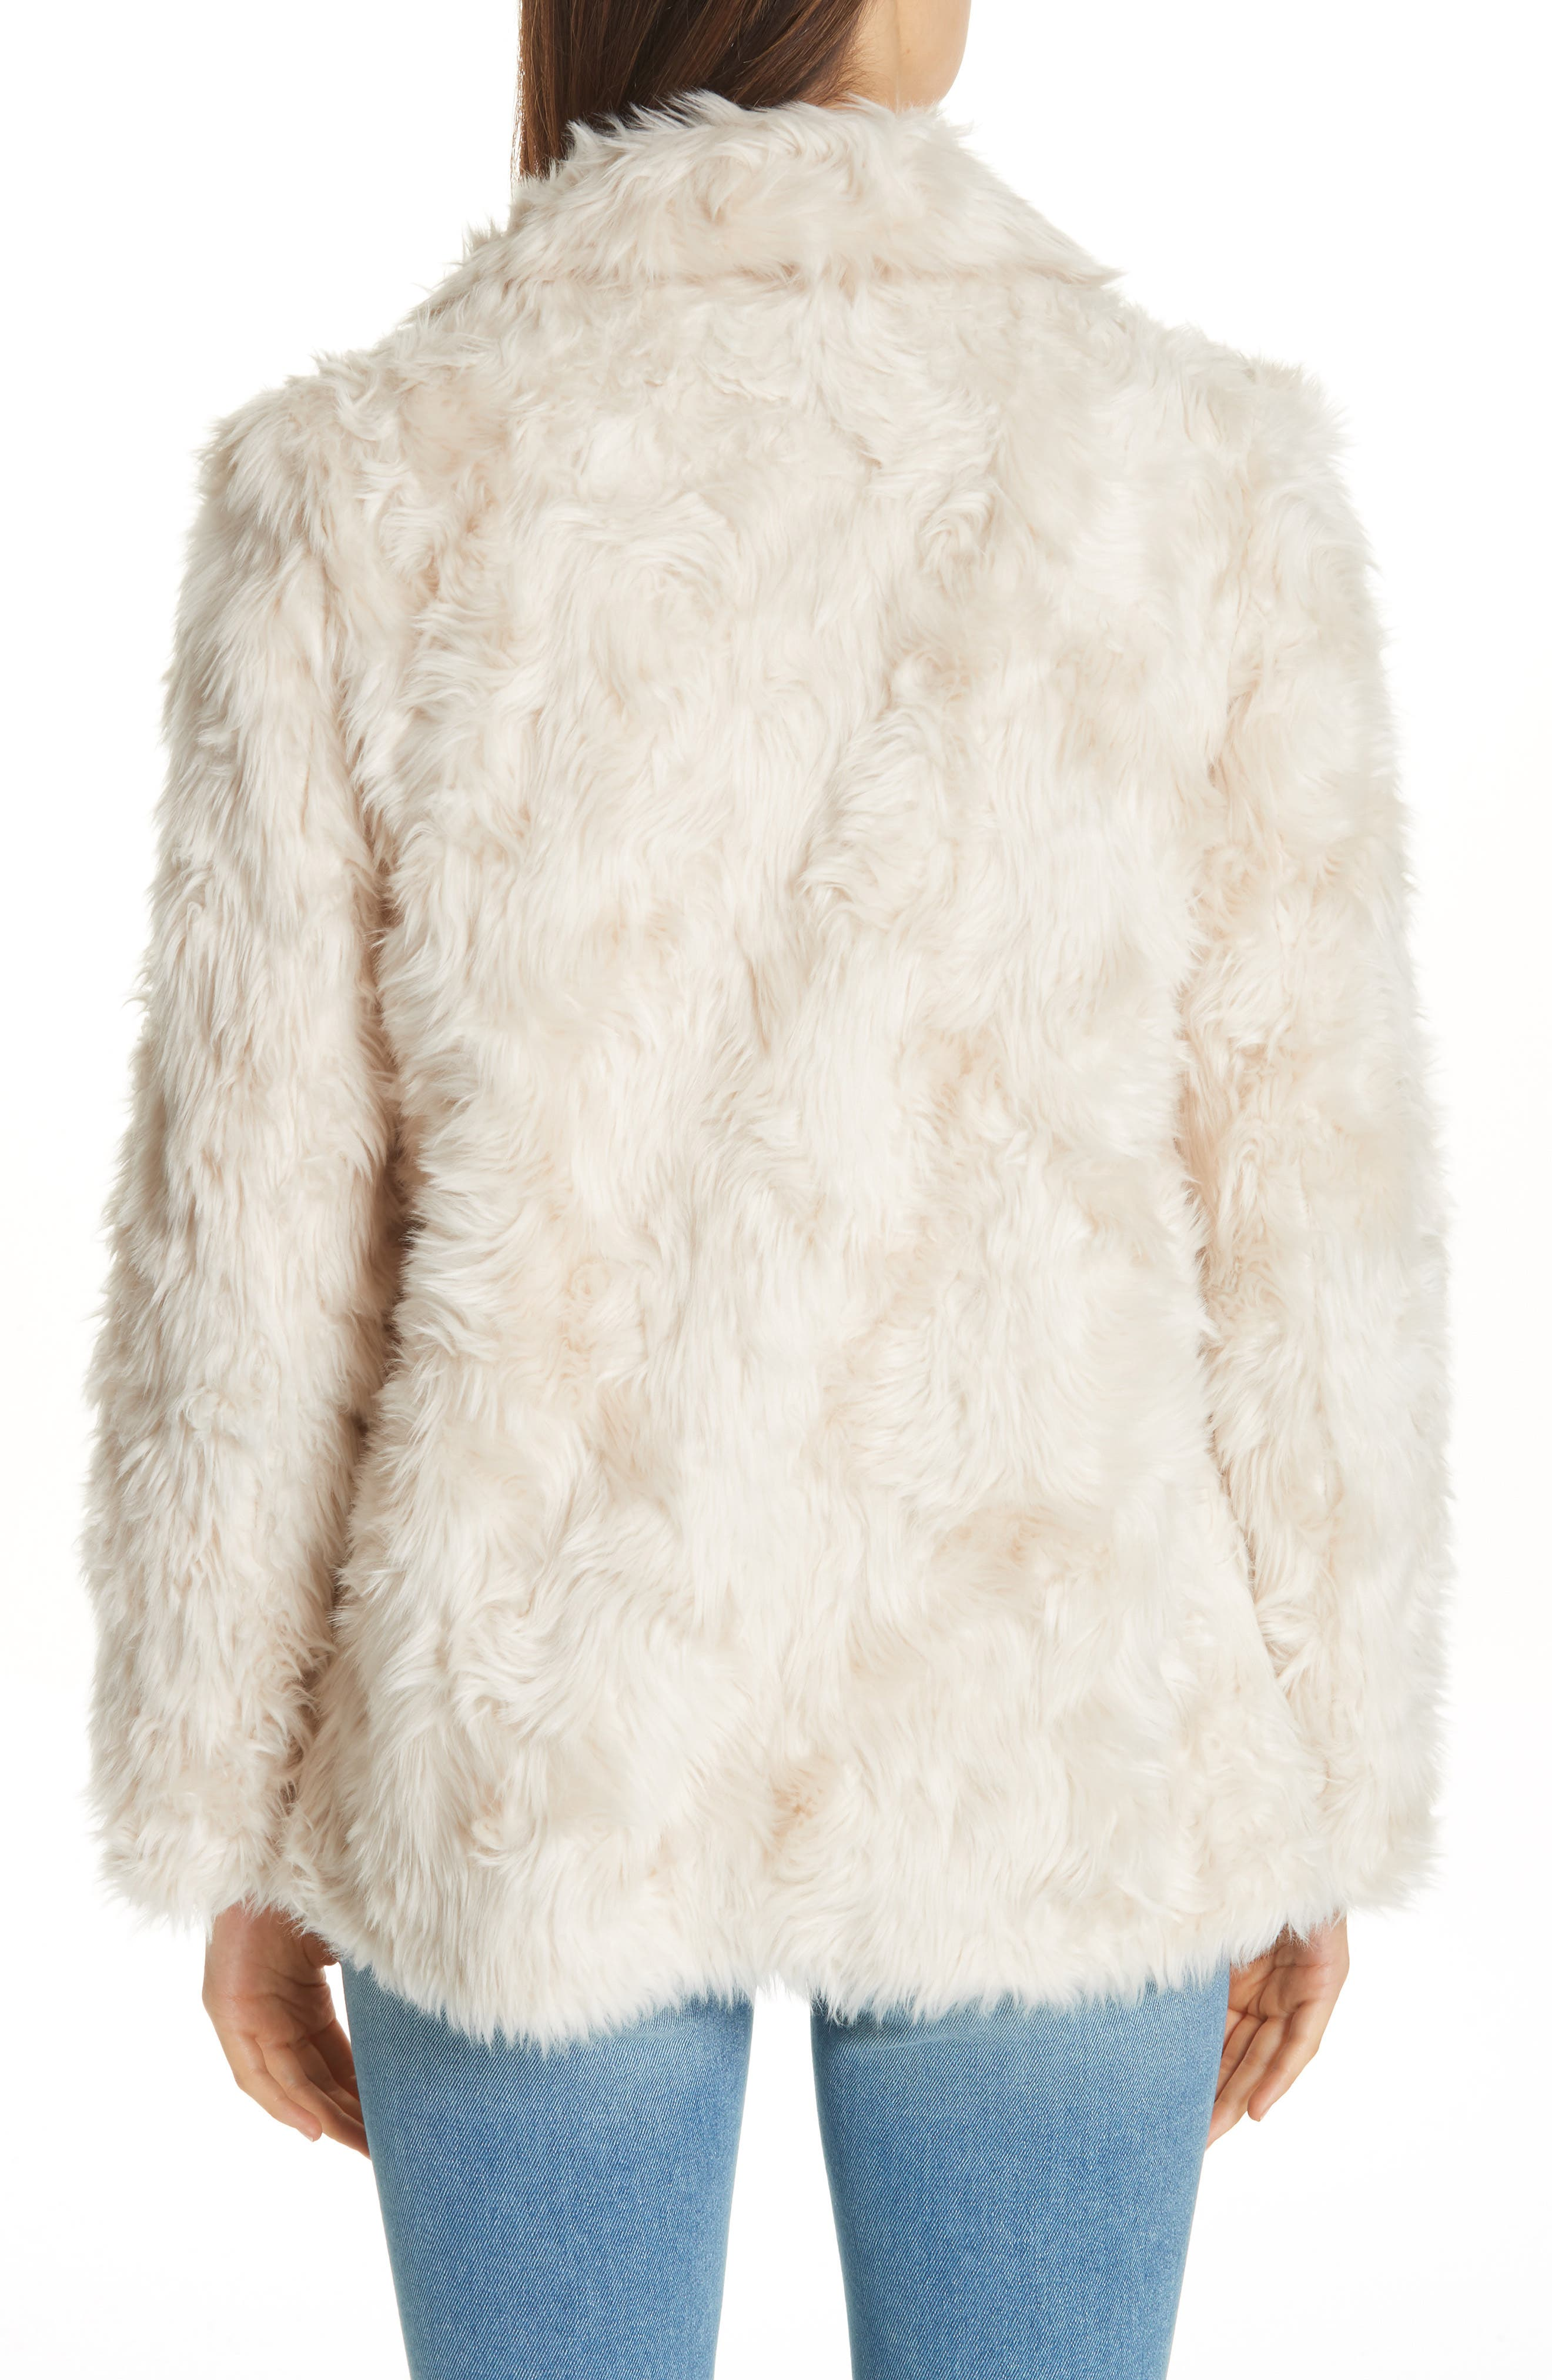 THEORY, Clairene Faux Fur Jacket, Alternate thumbnail 2, color, 907